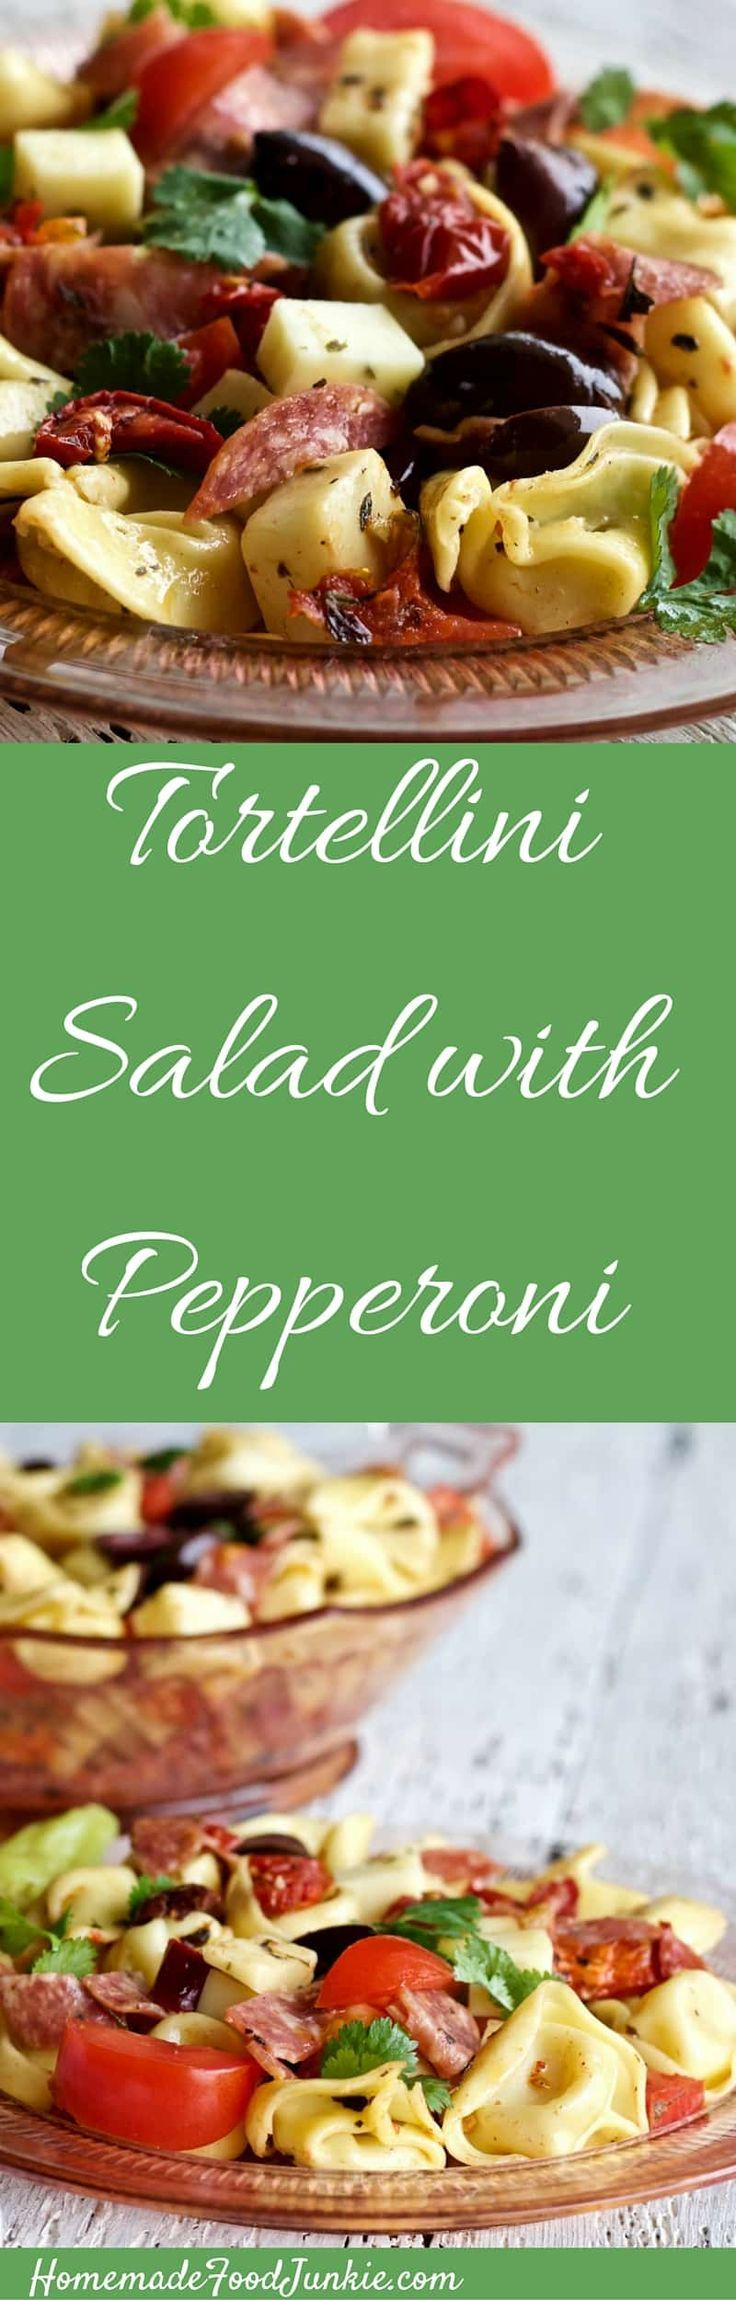 Tortellini salad with pepperoni makes a delicious meal. Full of Italian flavor. This recipe is Food Safe for an outdoor party table. Great grill side or stand alone light meal. Put it in a cooler and take it camping or to a picnic.